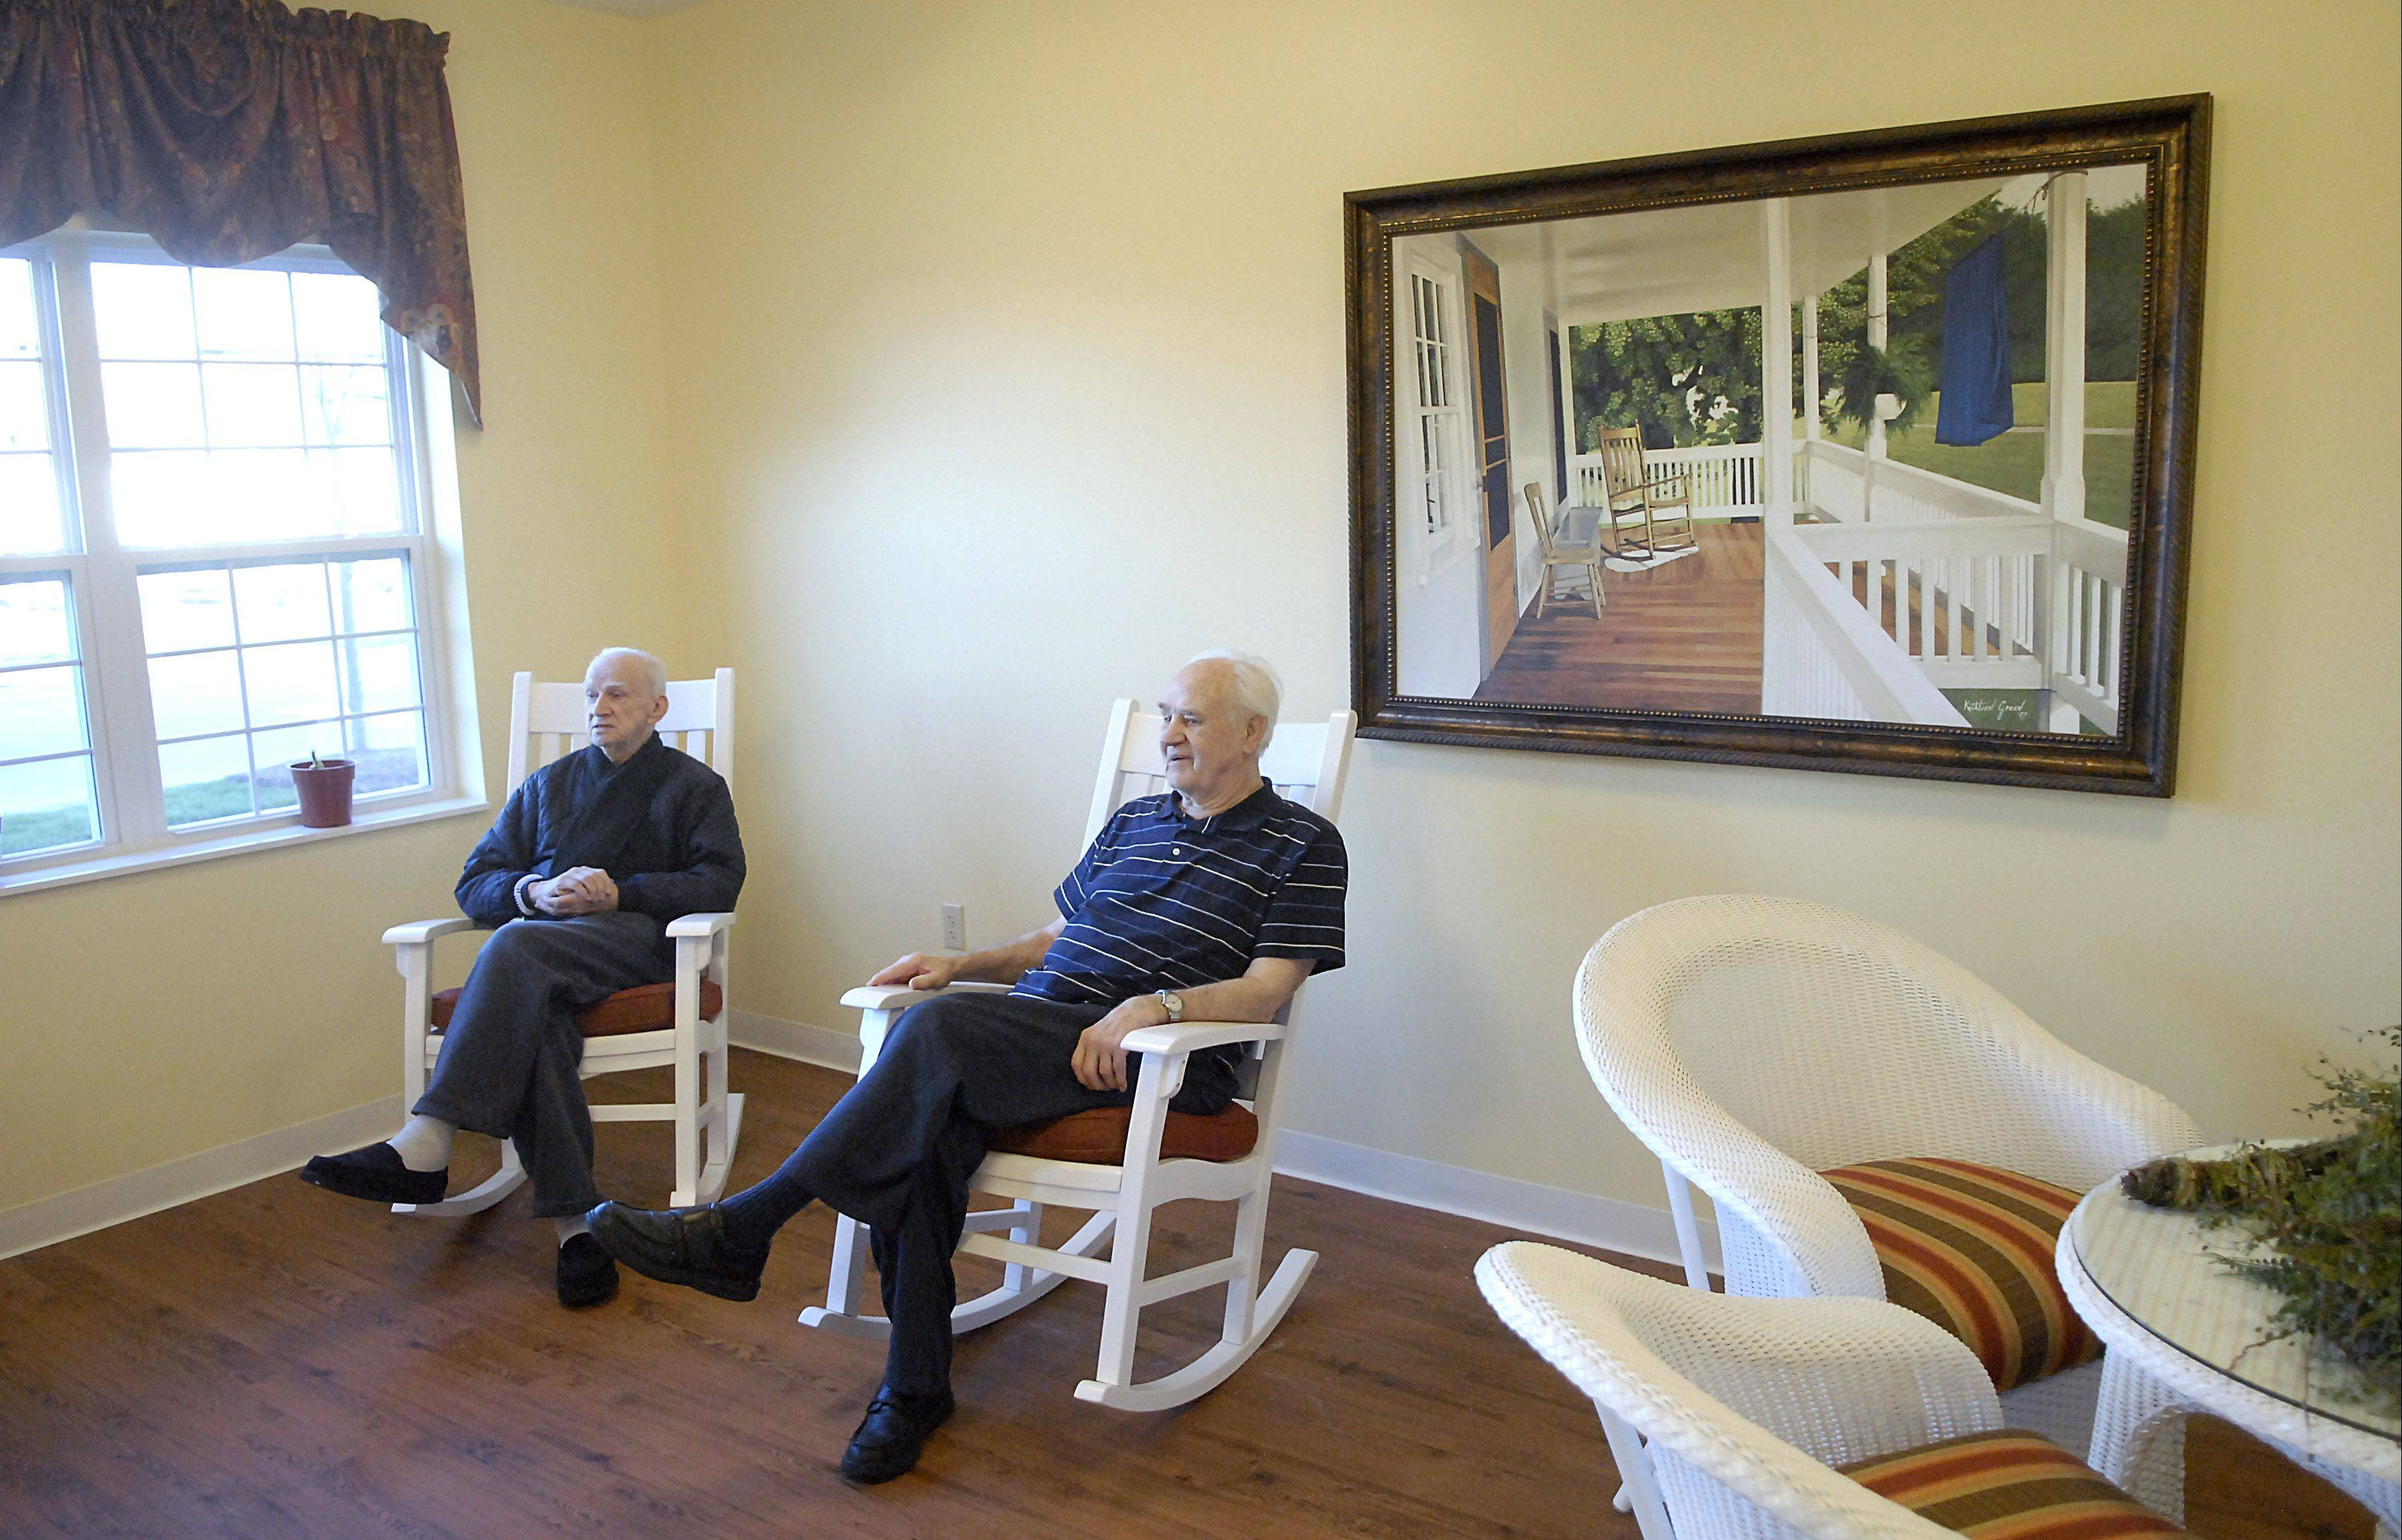 White Oaks residents Claude Demby, left, and Ken Madsen relax in a sitting room at the memory care home in South Elgin. White Oaks at Heritage Woods offers apartment homes for seniors with Alzheimer's disease or related dementia.